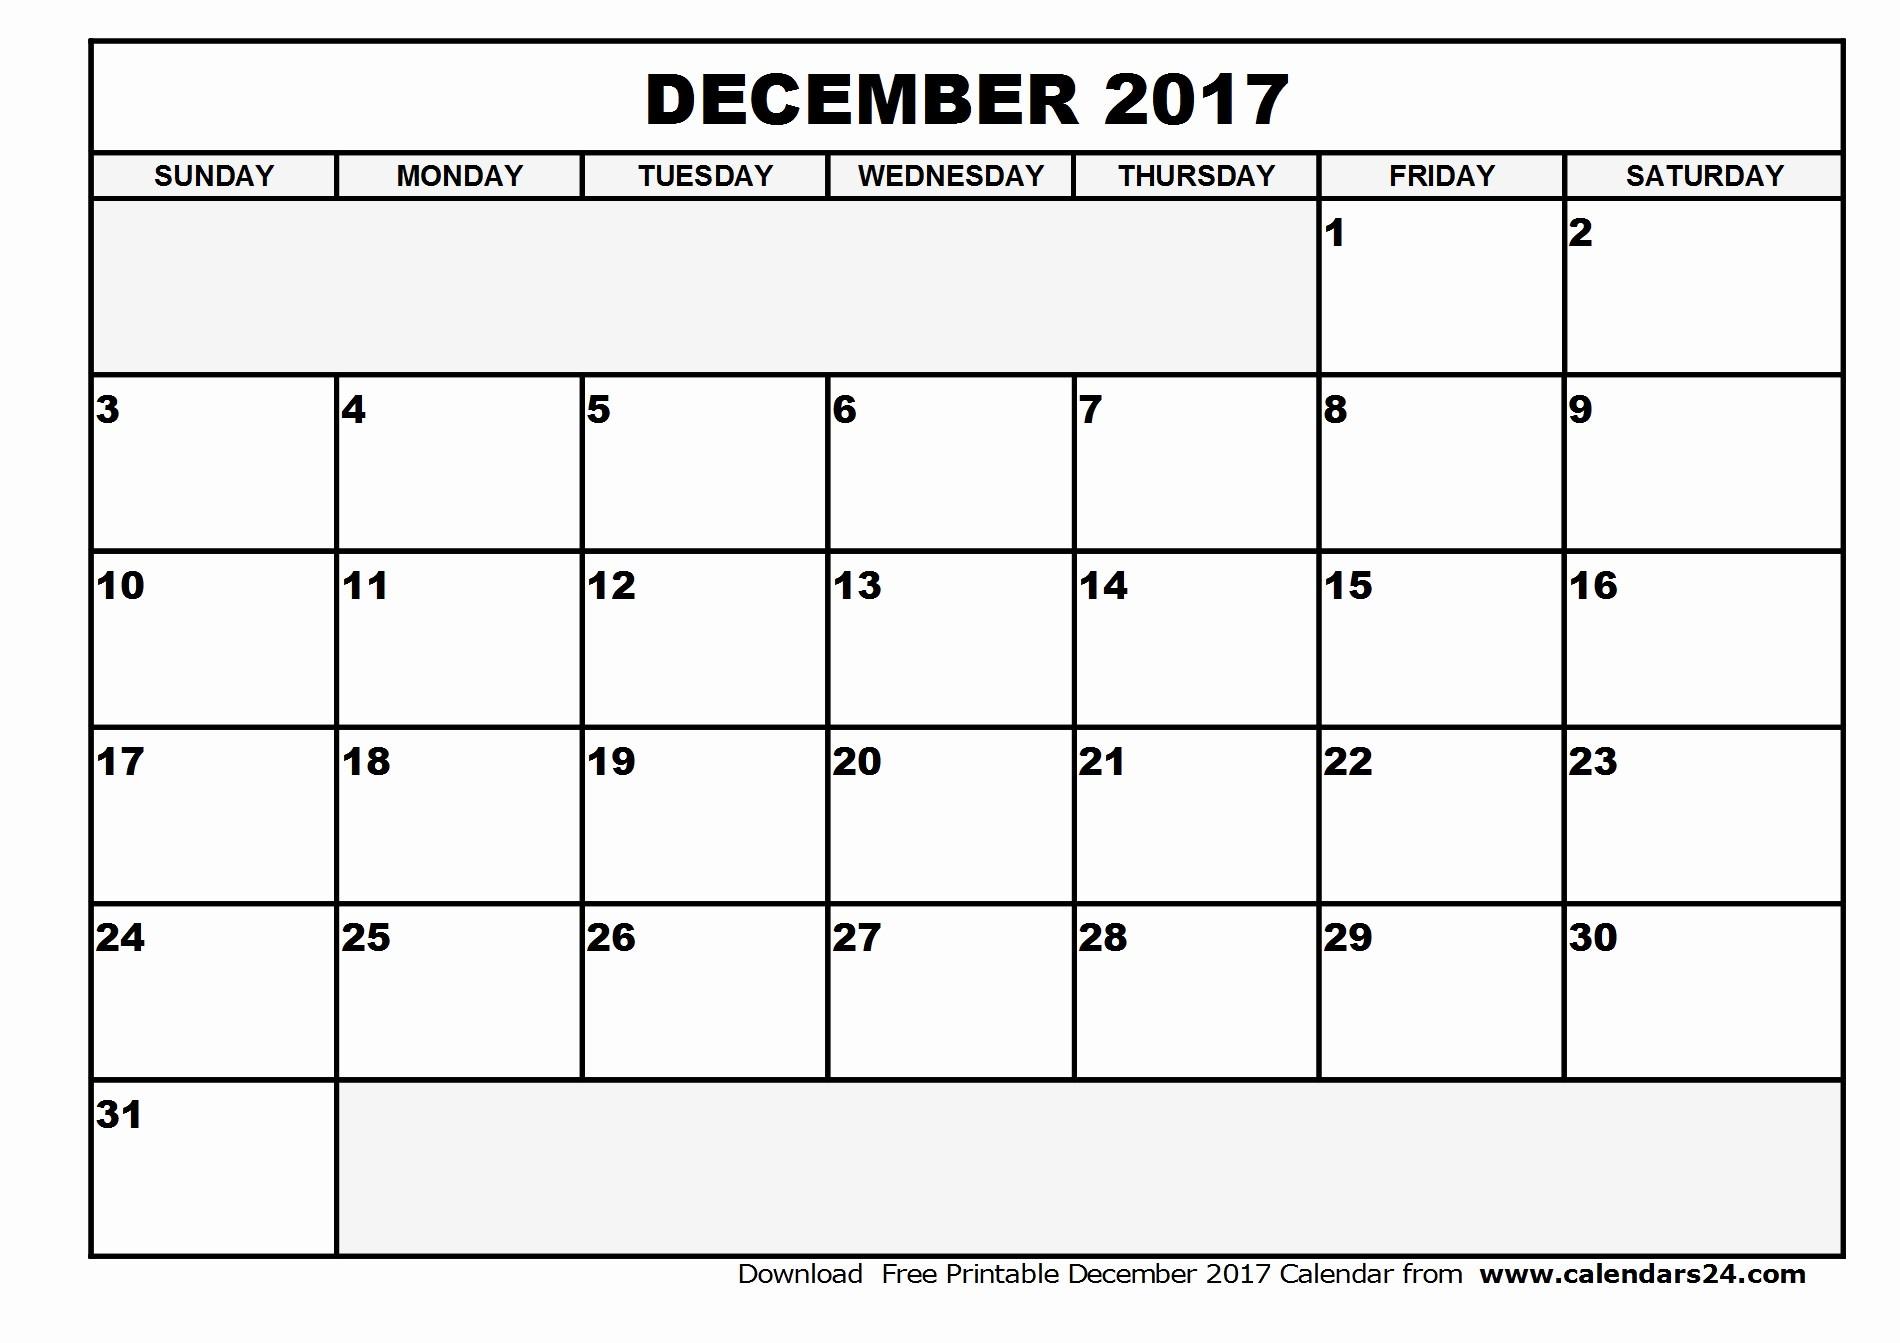 Excel Calendar 2017 with Holidays Inspirational December 2017 Calendar Excel